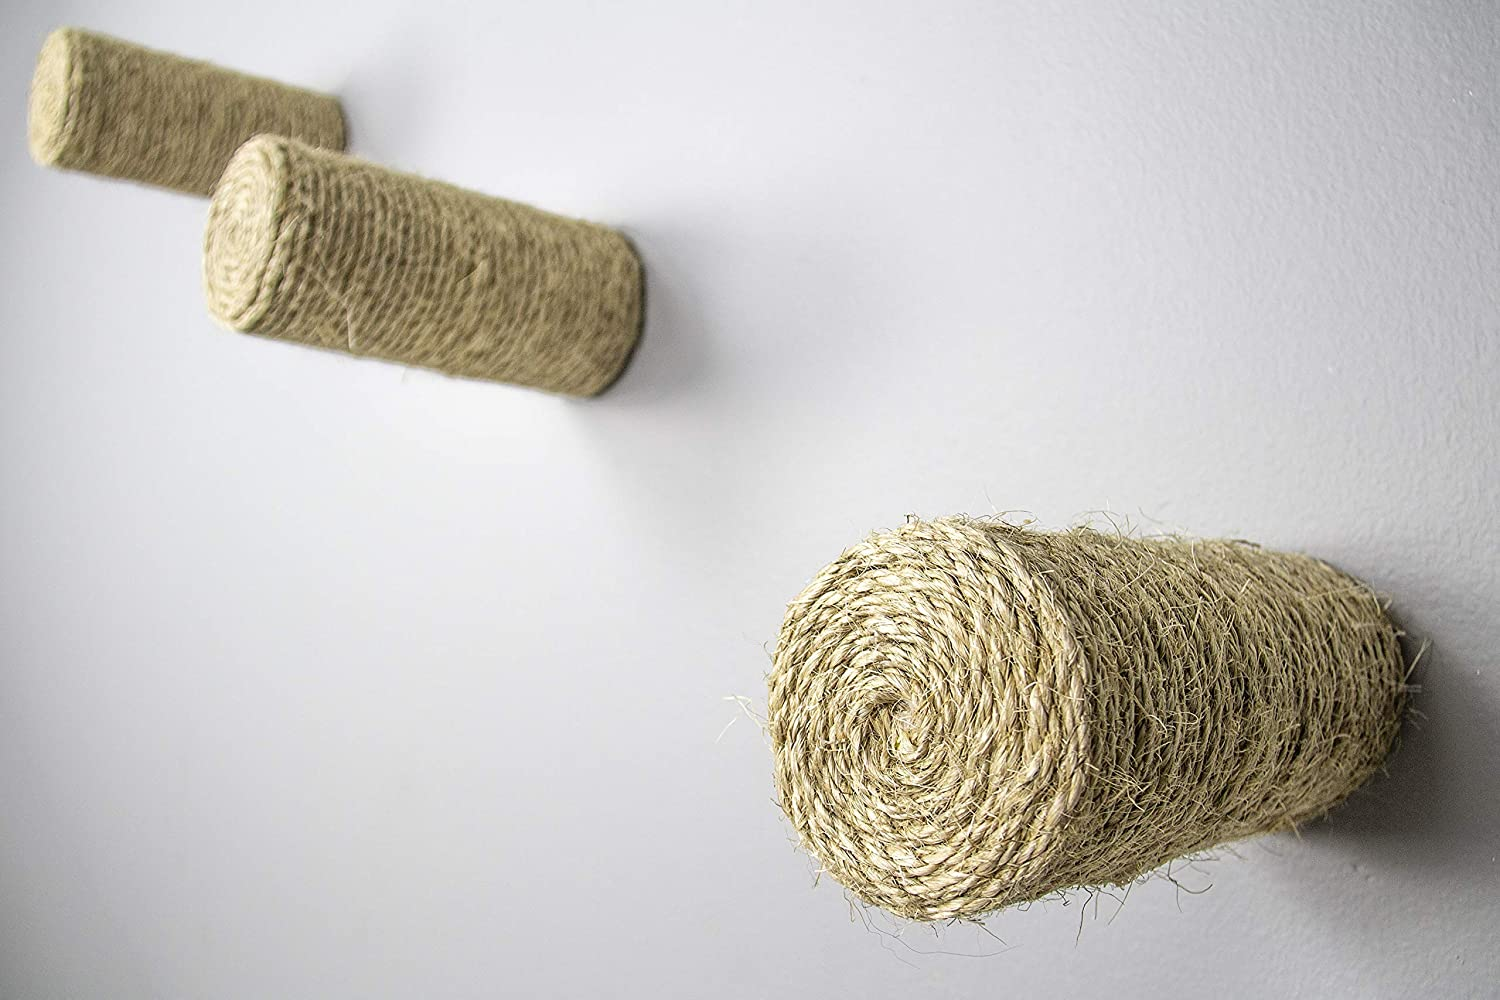 Wall Step Floating Wall Steps Cat Step Sisal Post Modern Cat Wall Cat Gym, Cat Stairs Cat Climbing Wall Step Post